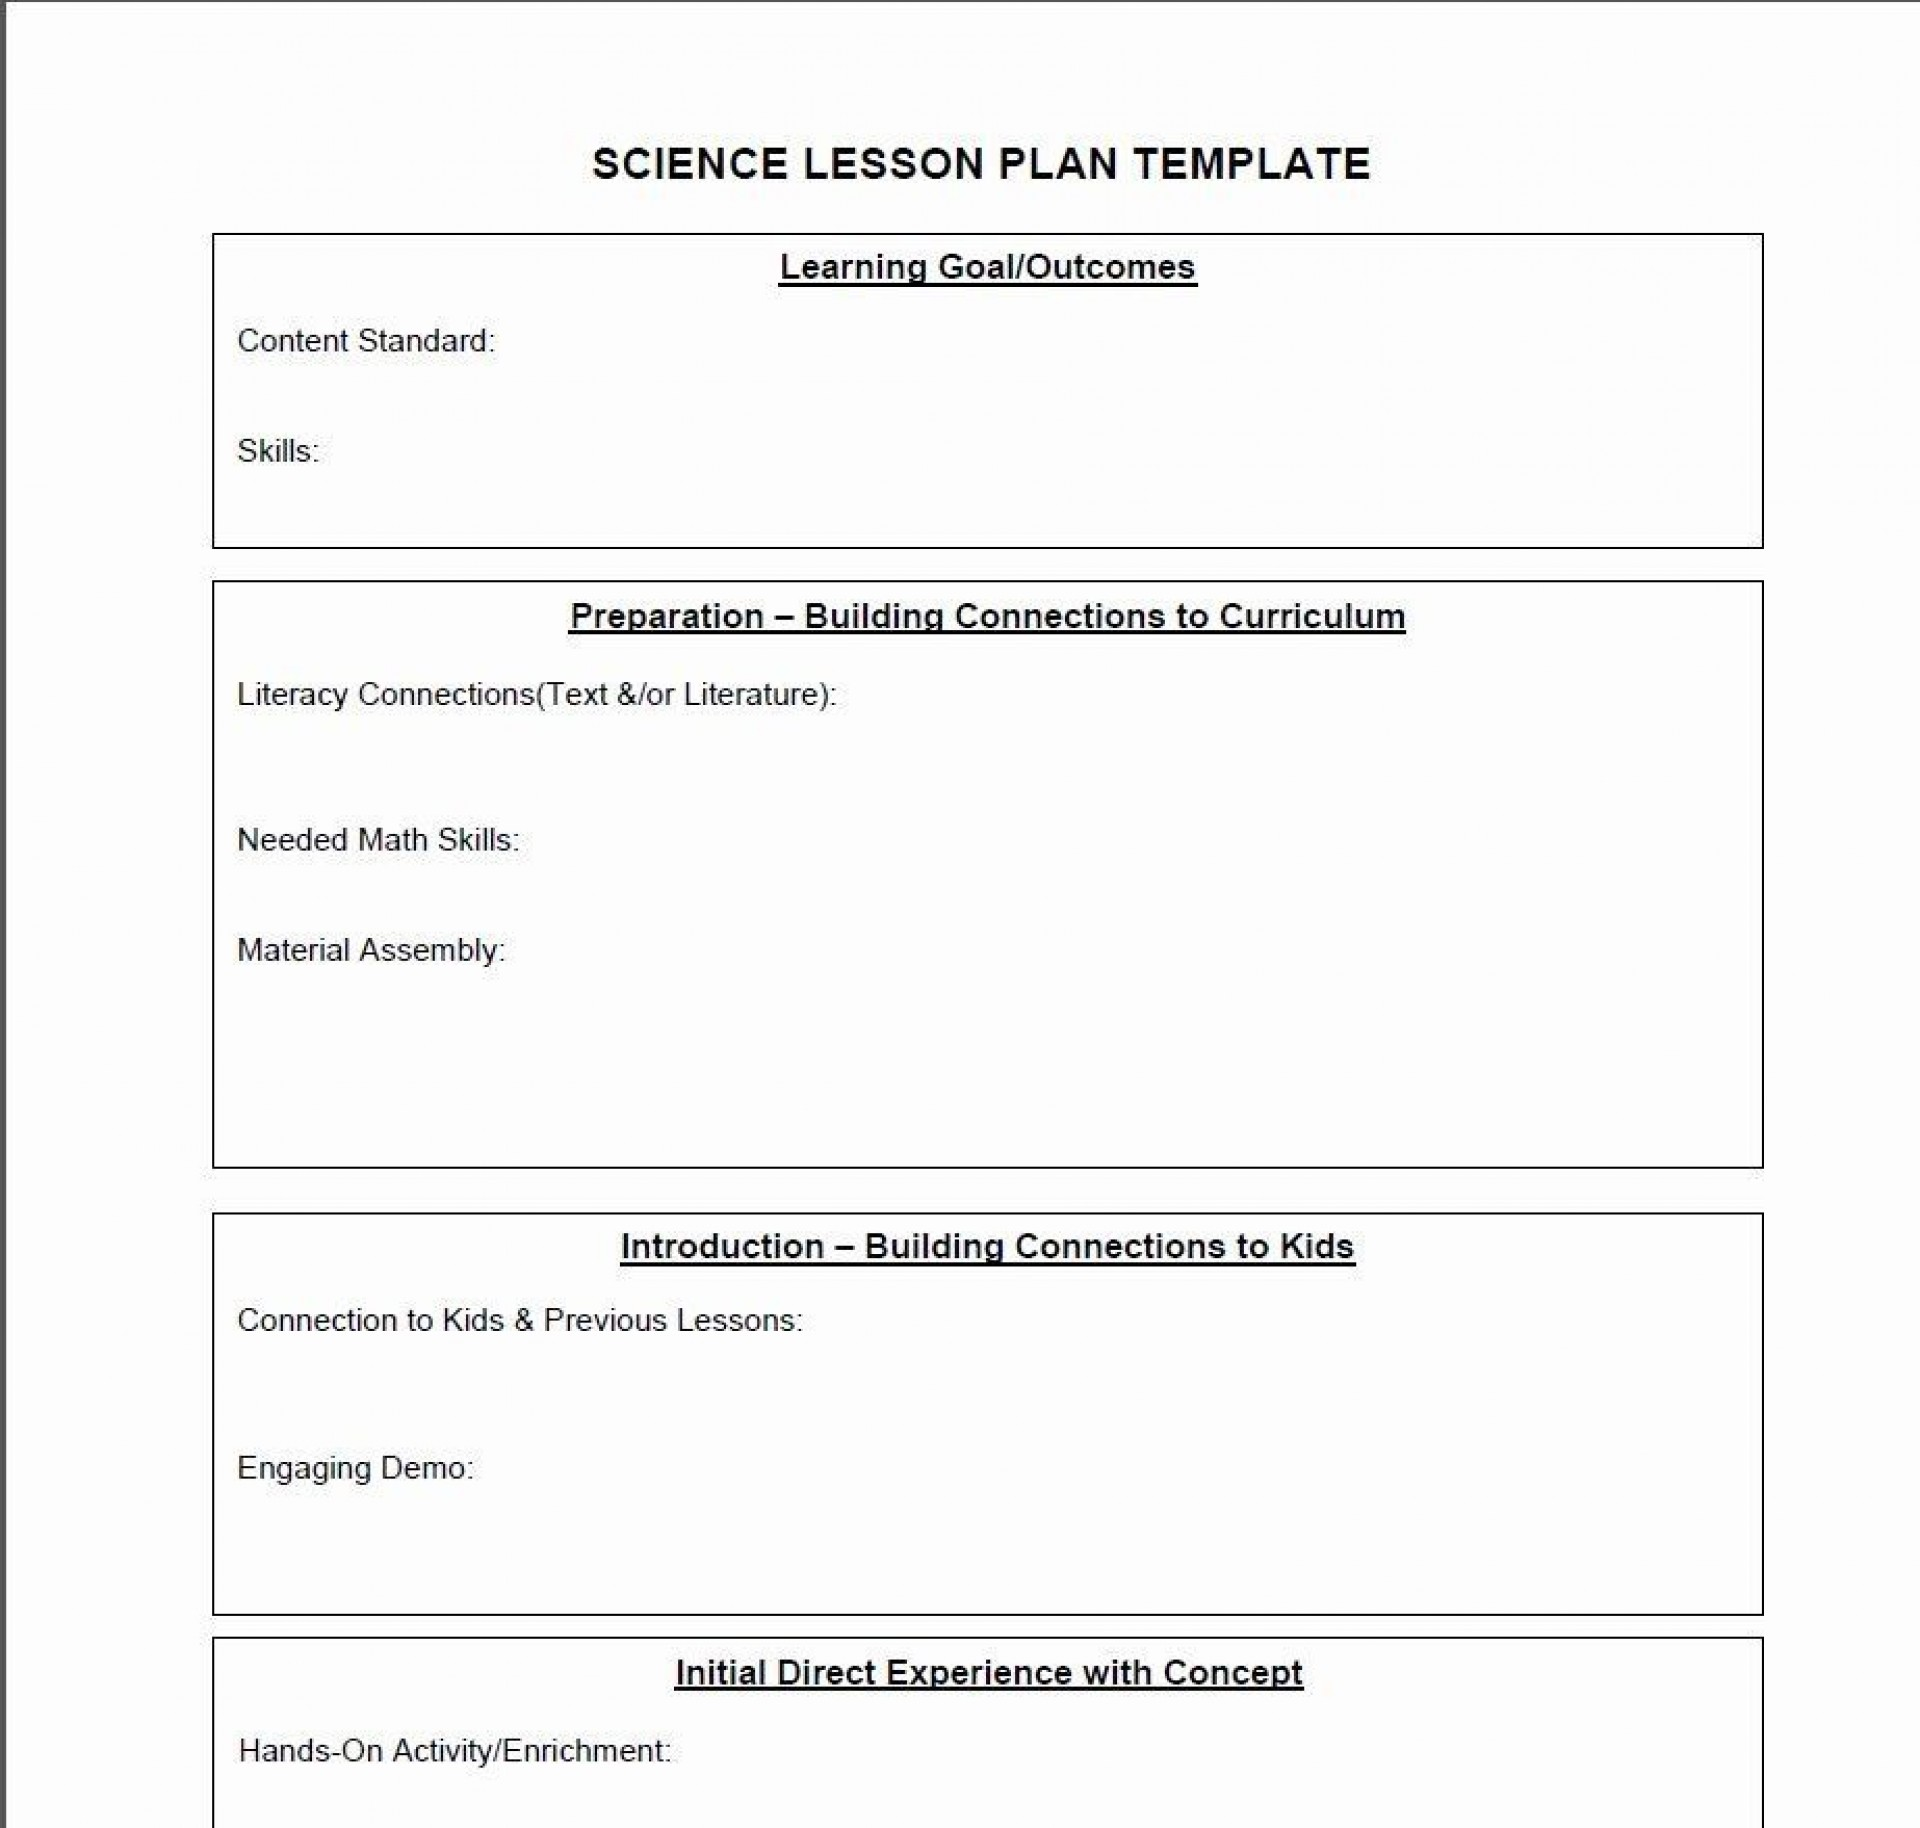 003 Singular Middle School Lesson Plan Template High Def  Art Example For Social Studie1920